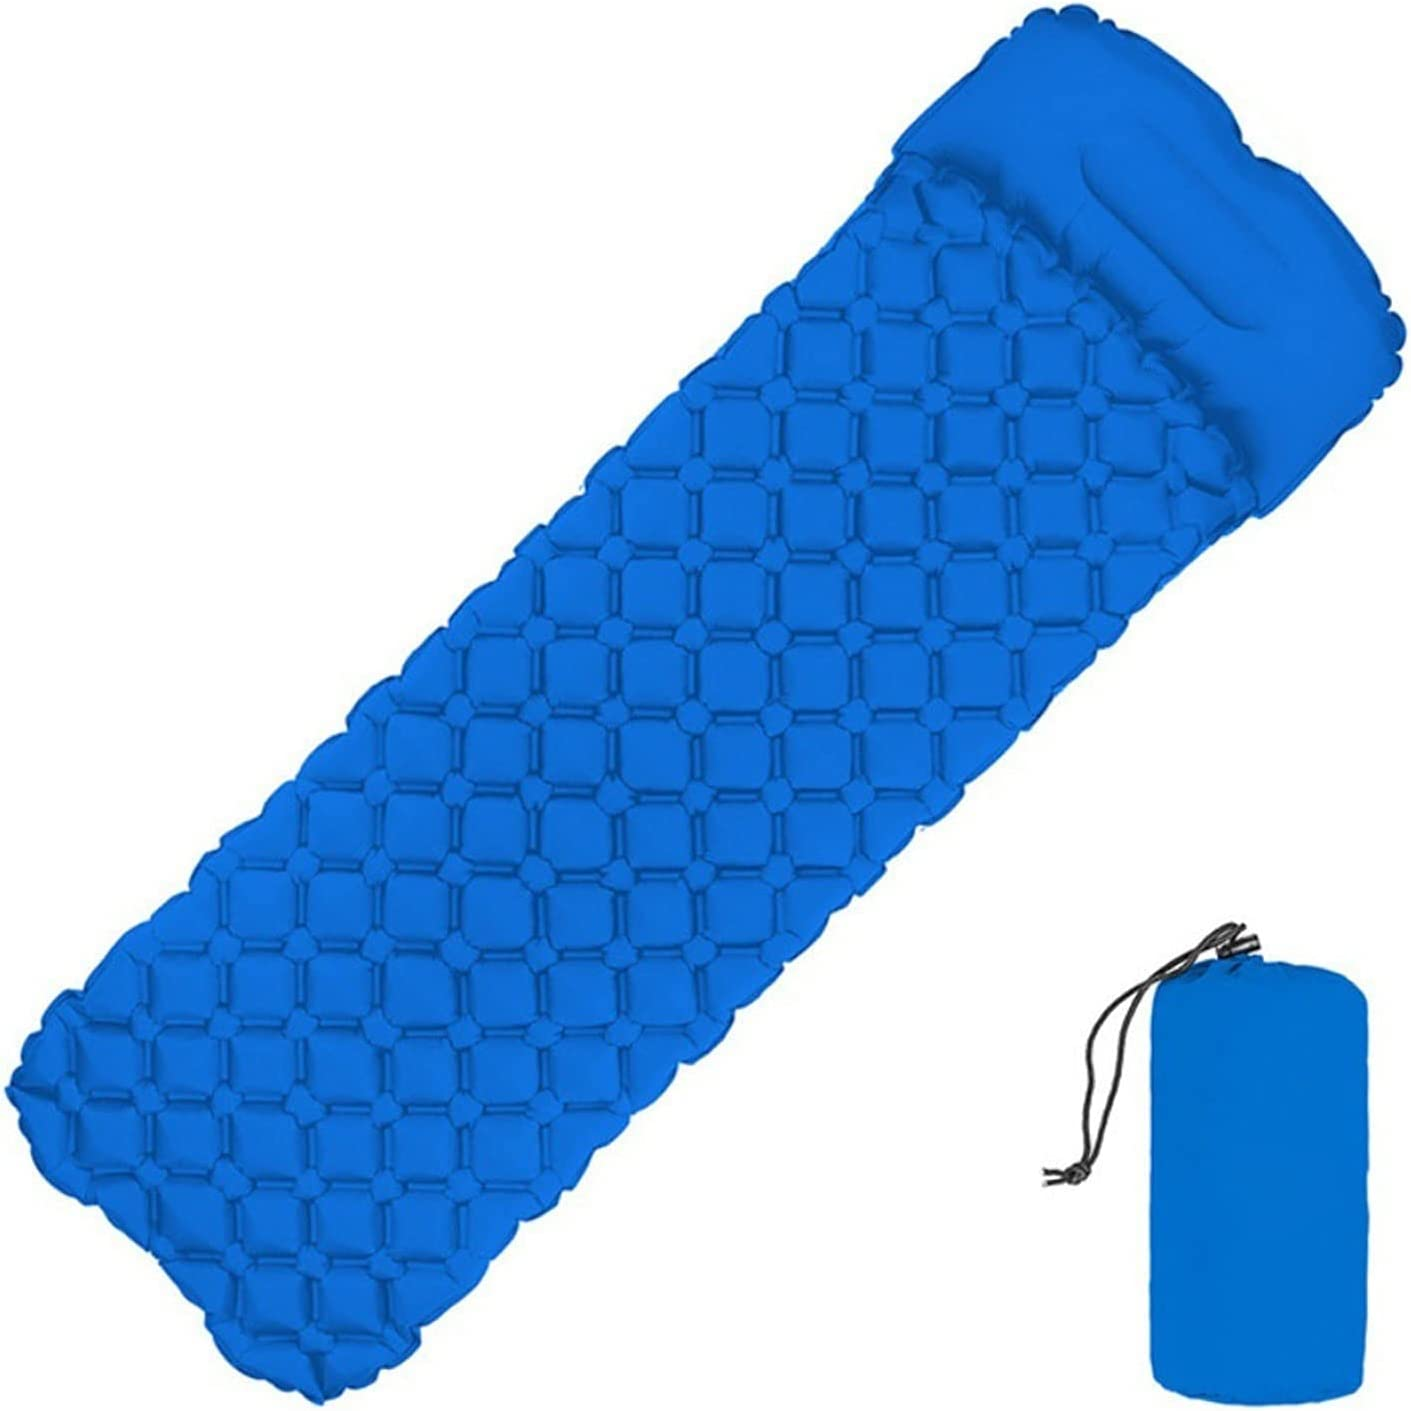 WWPP Camping Sleeping pad Online limited product Dedication Most f Suitable Lightweight